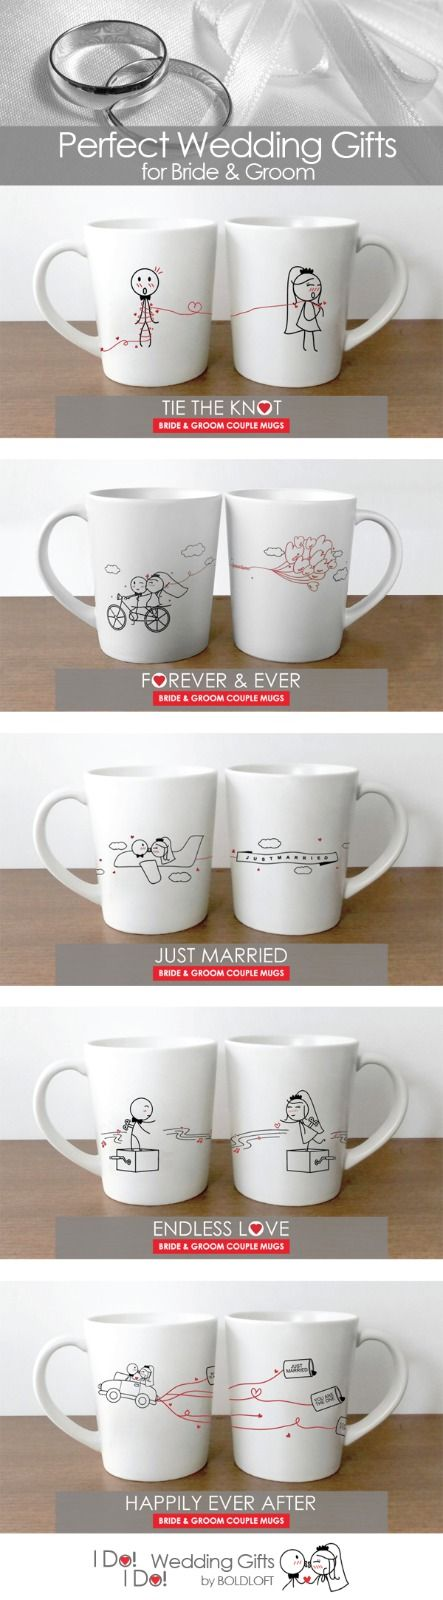 Help the newlyweds celebrate their day with our BOLDLOFT® I Do! I Do! wedding gifts for bride and groom. Our collection has cute, whimsical and joyful gifts for engagements, weddings, showers, bridal, bachelor and bachelorette parties. Couples pillowcases, his and hers mug and drinking glasses all celebrate and commemorate the happy day and couple.